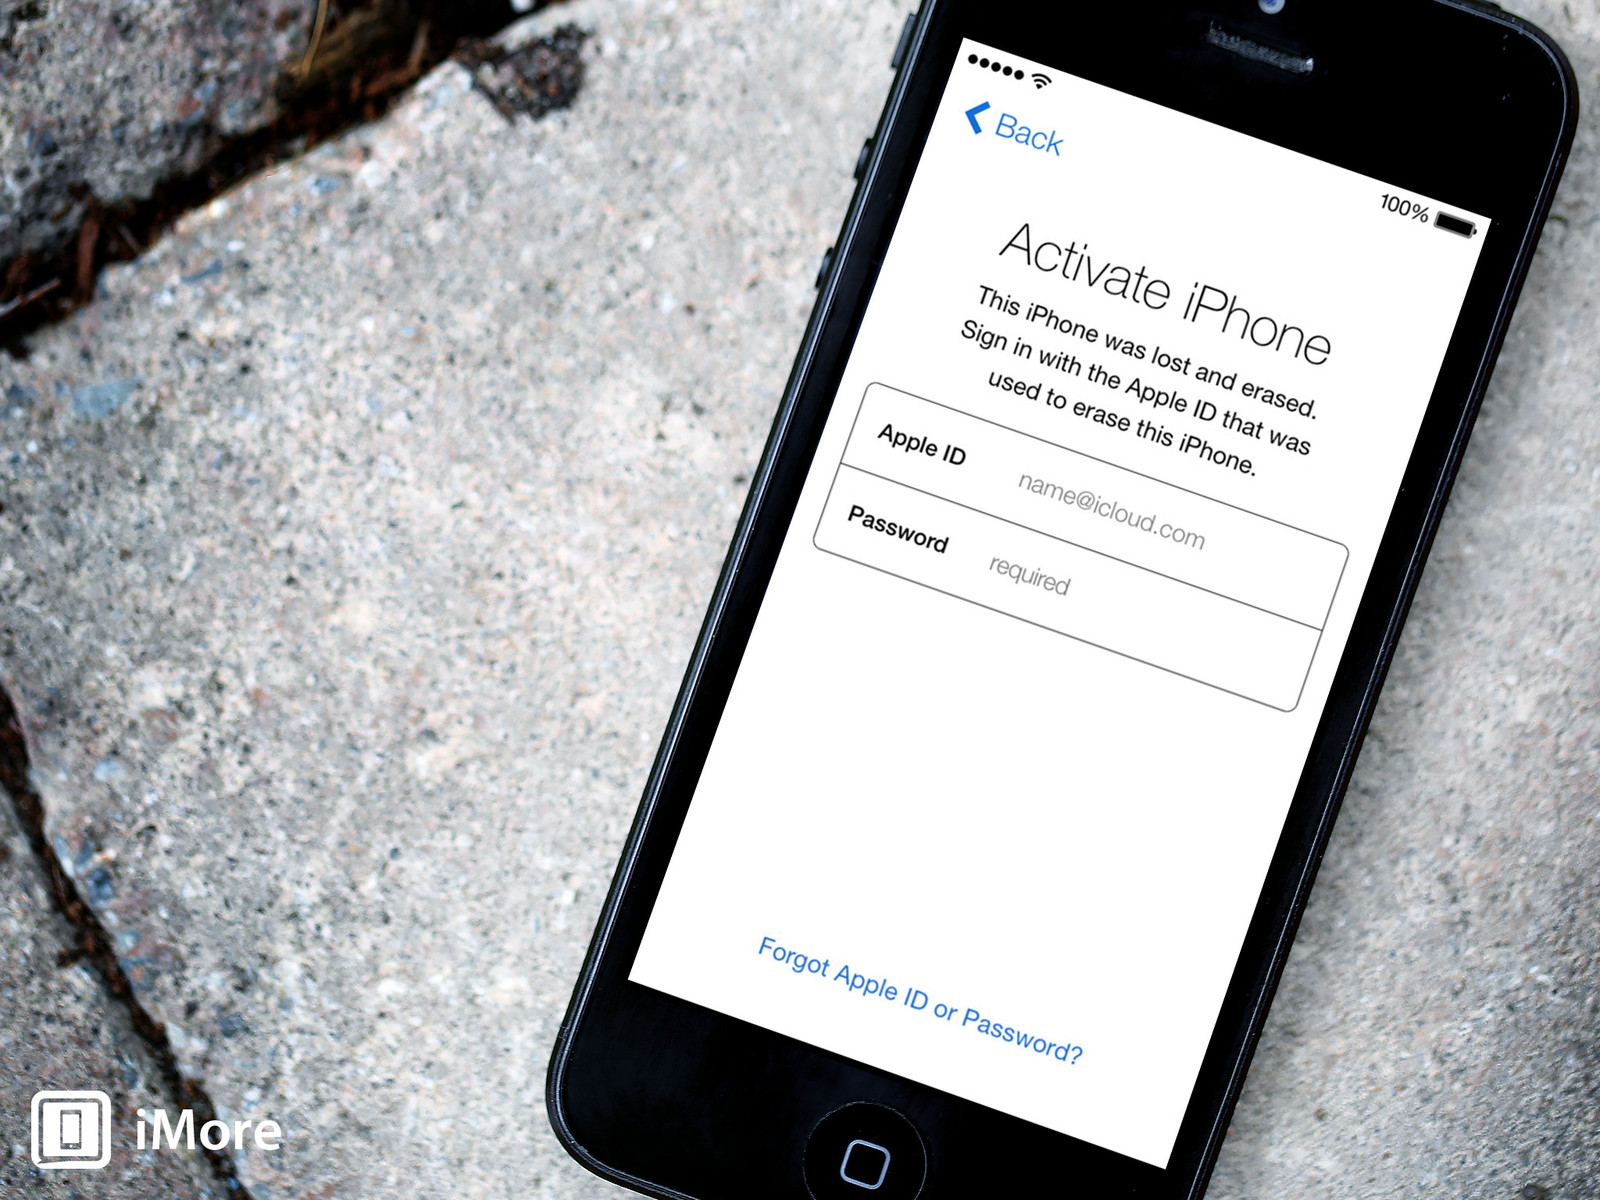 How to turn off find my iphone 6 without icloud password